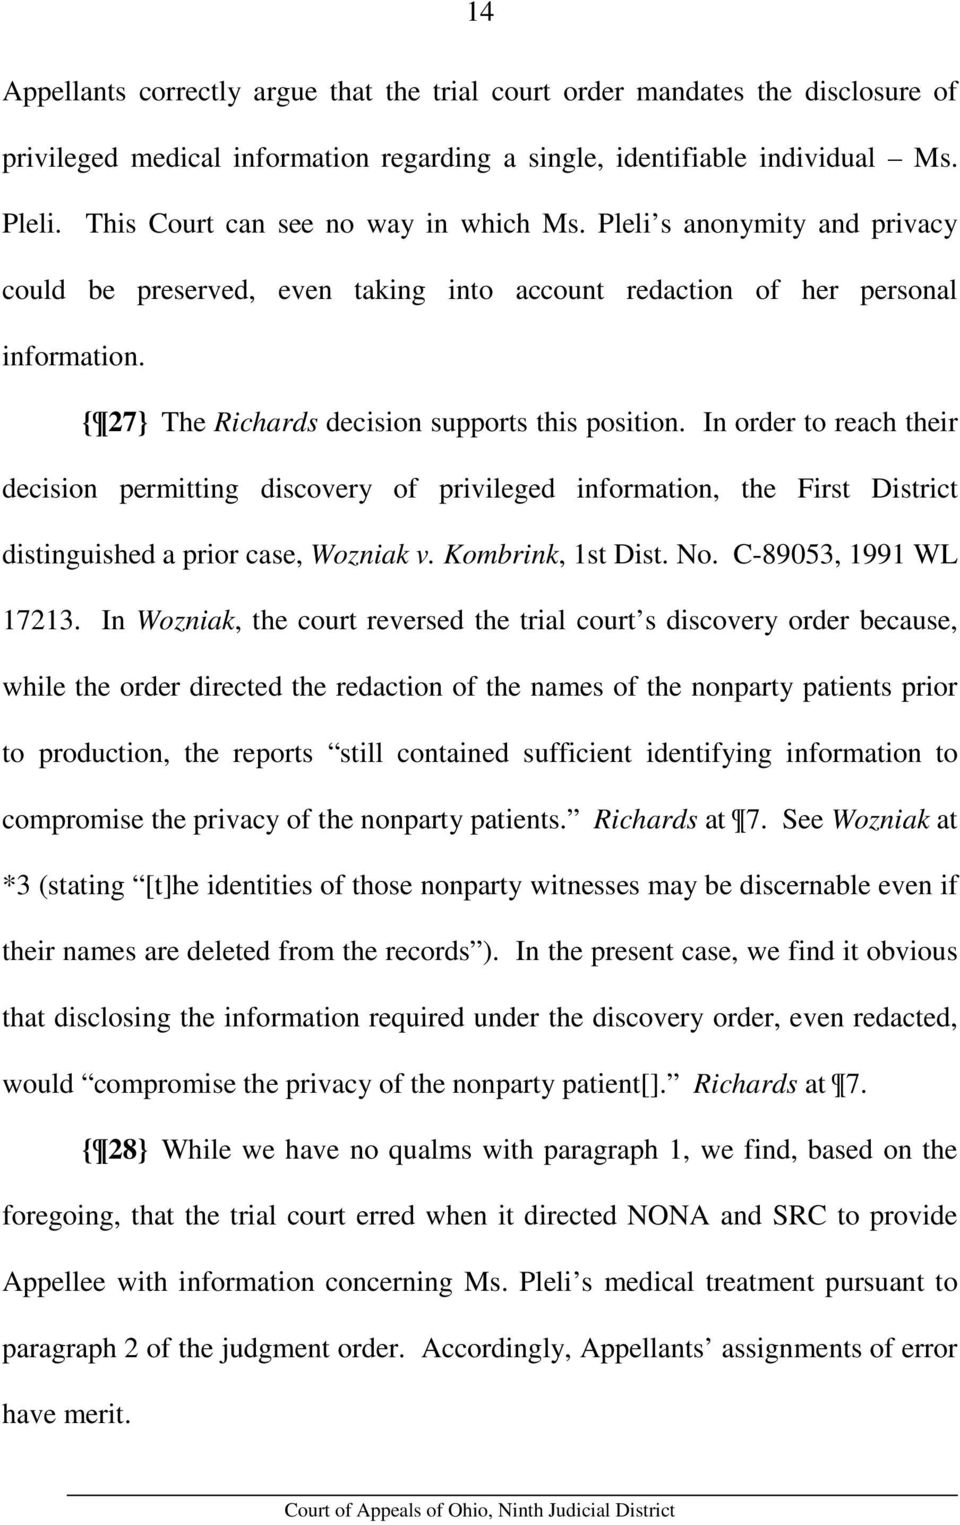 { 27} The Richards decision supports this position. In order to reach their decision permitting discovery of privileged information, the First District distinguished a prior case, Wozniak v.